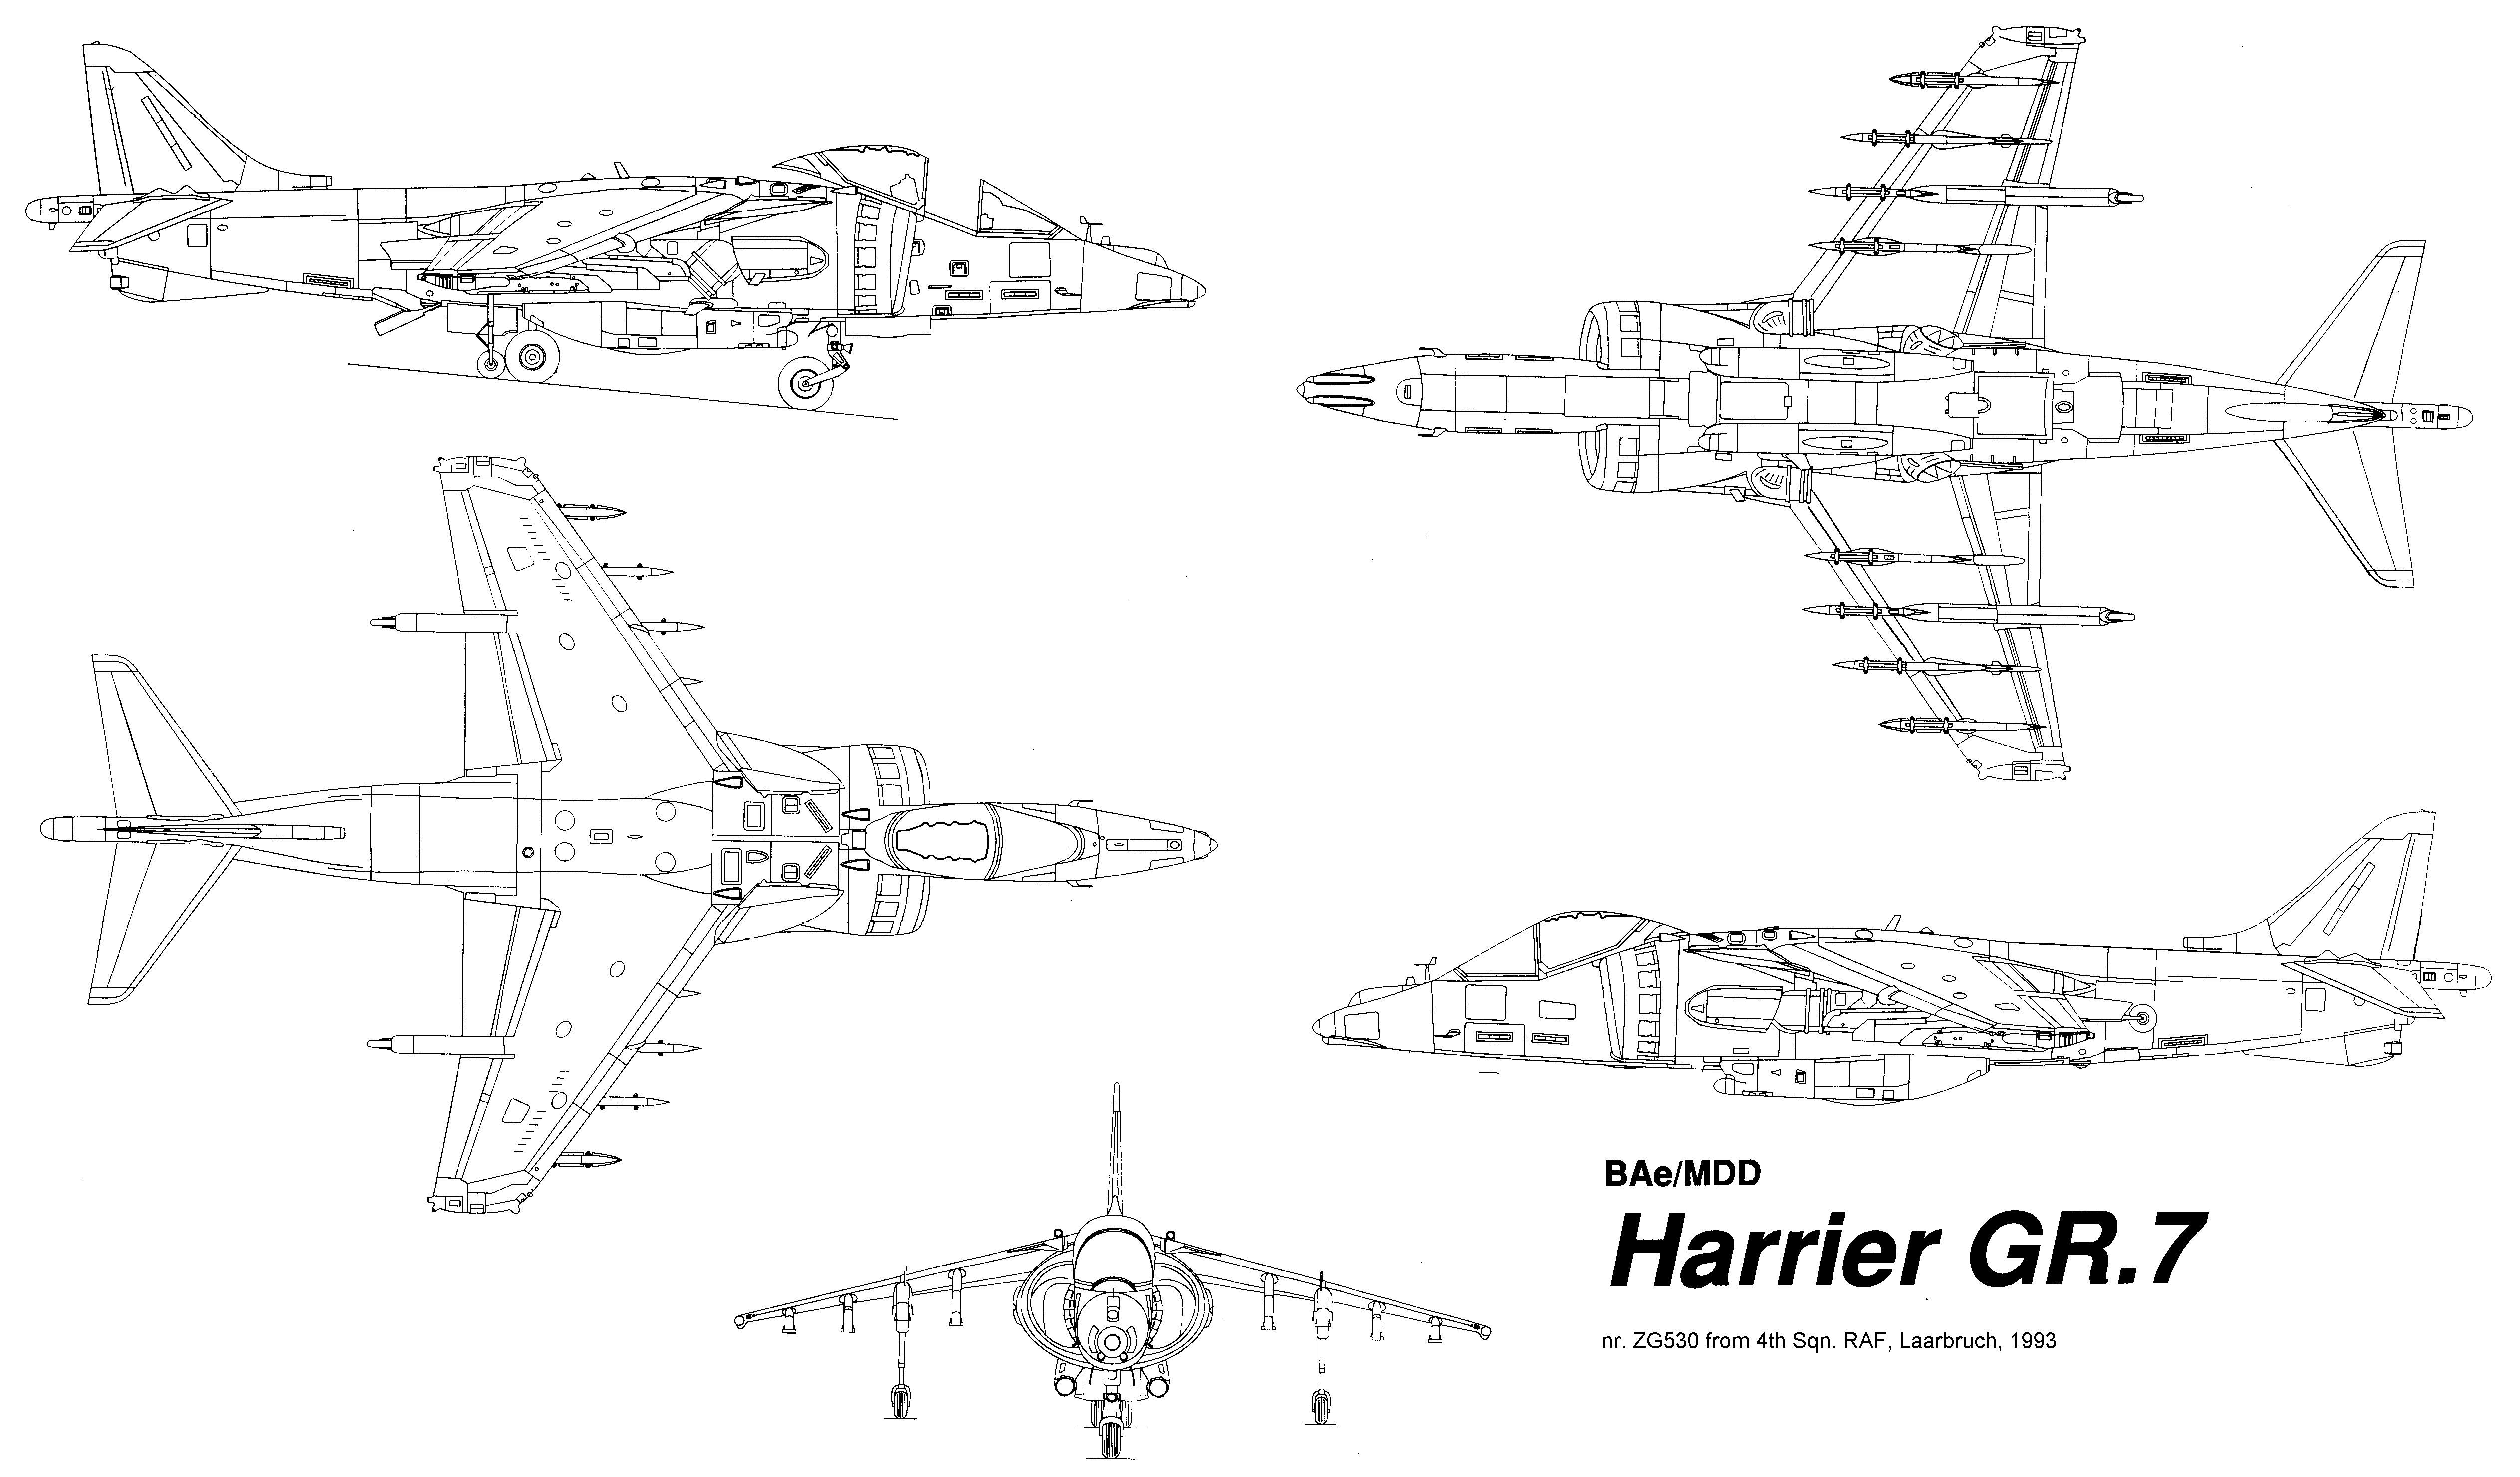 harrier gr 7 blueprint [ 5051 x 2961 Pixel ]